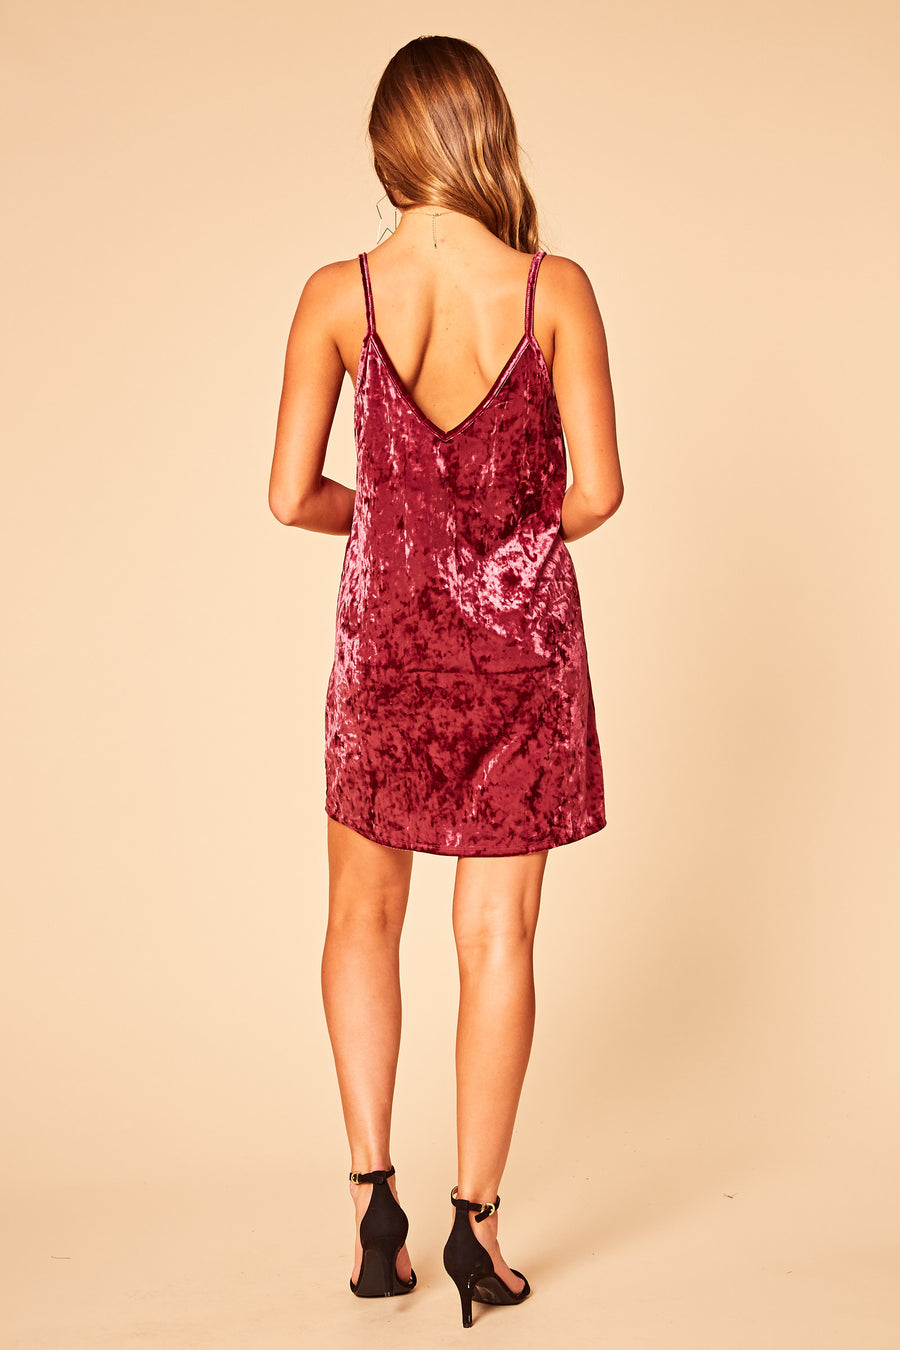 Constant Crush Slip Dress - HoneyBum